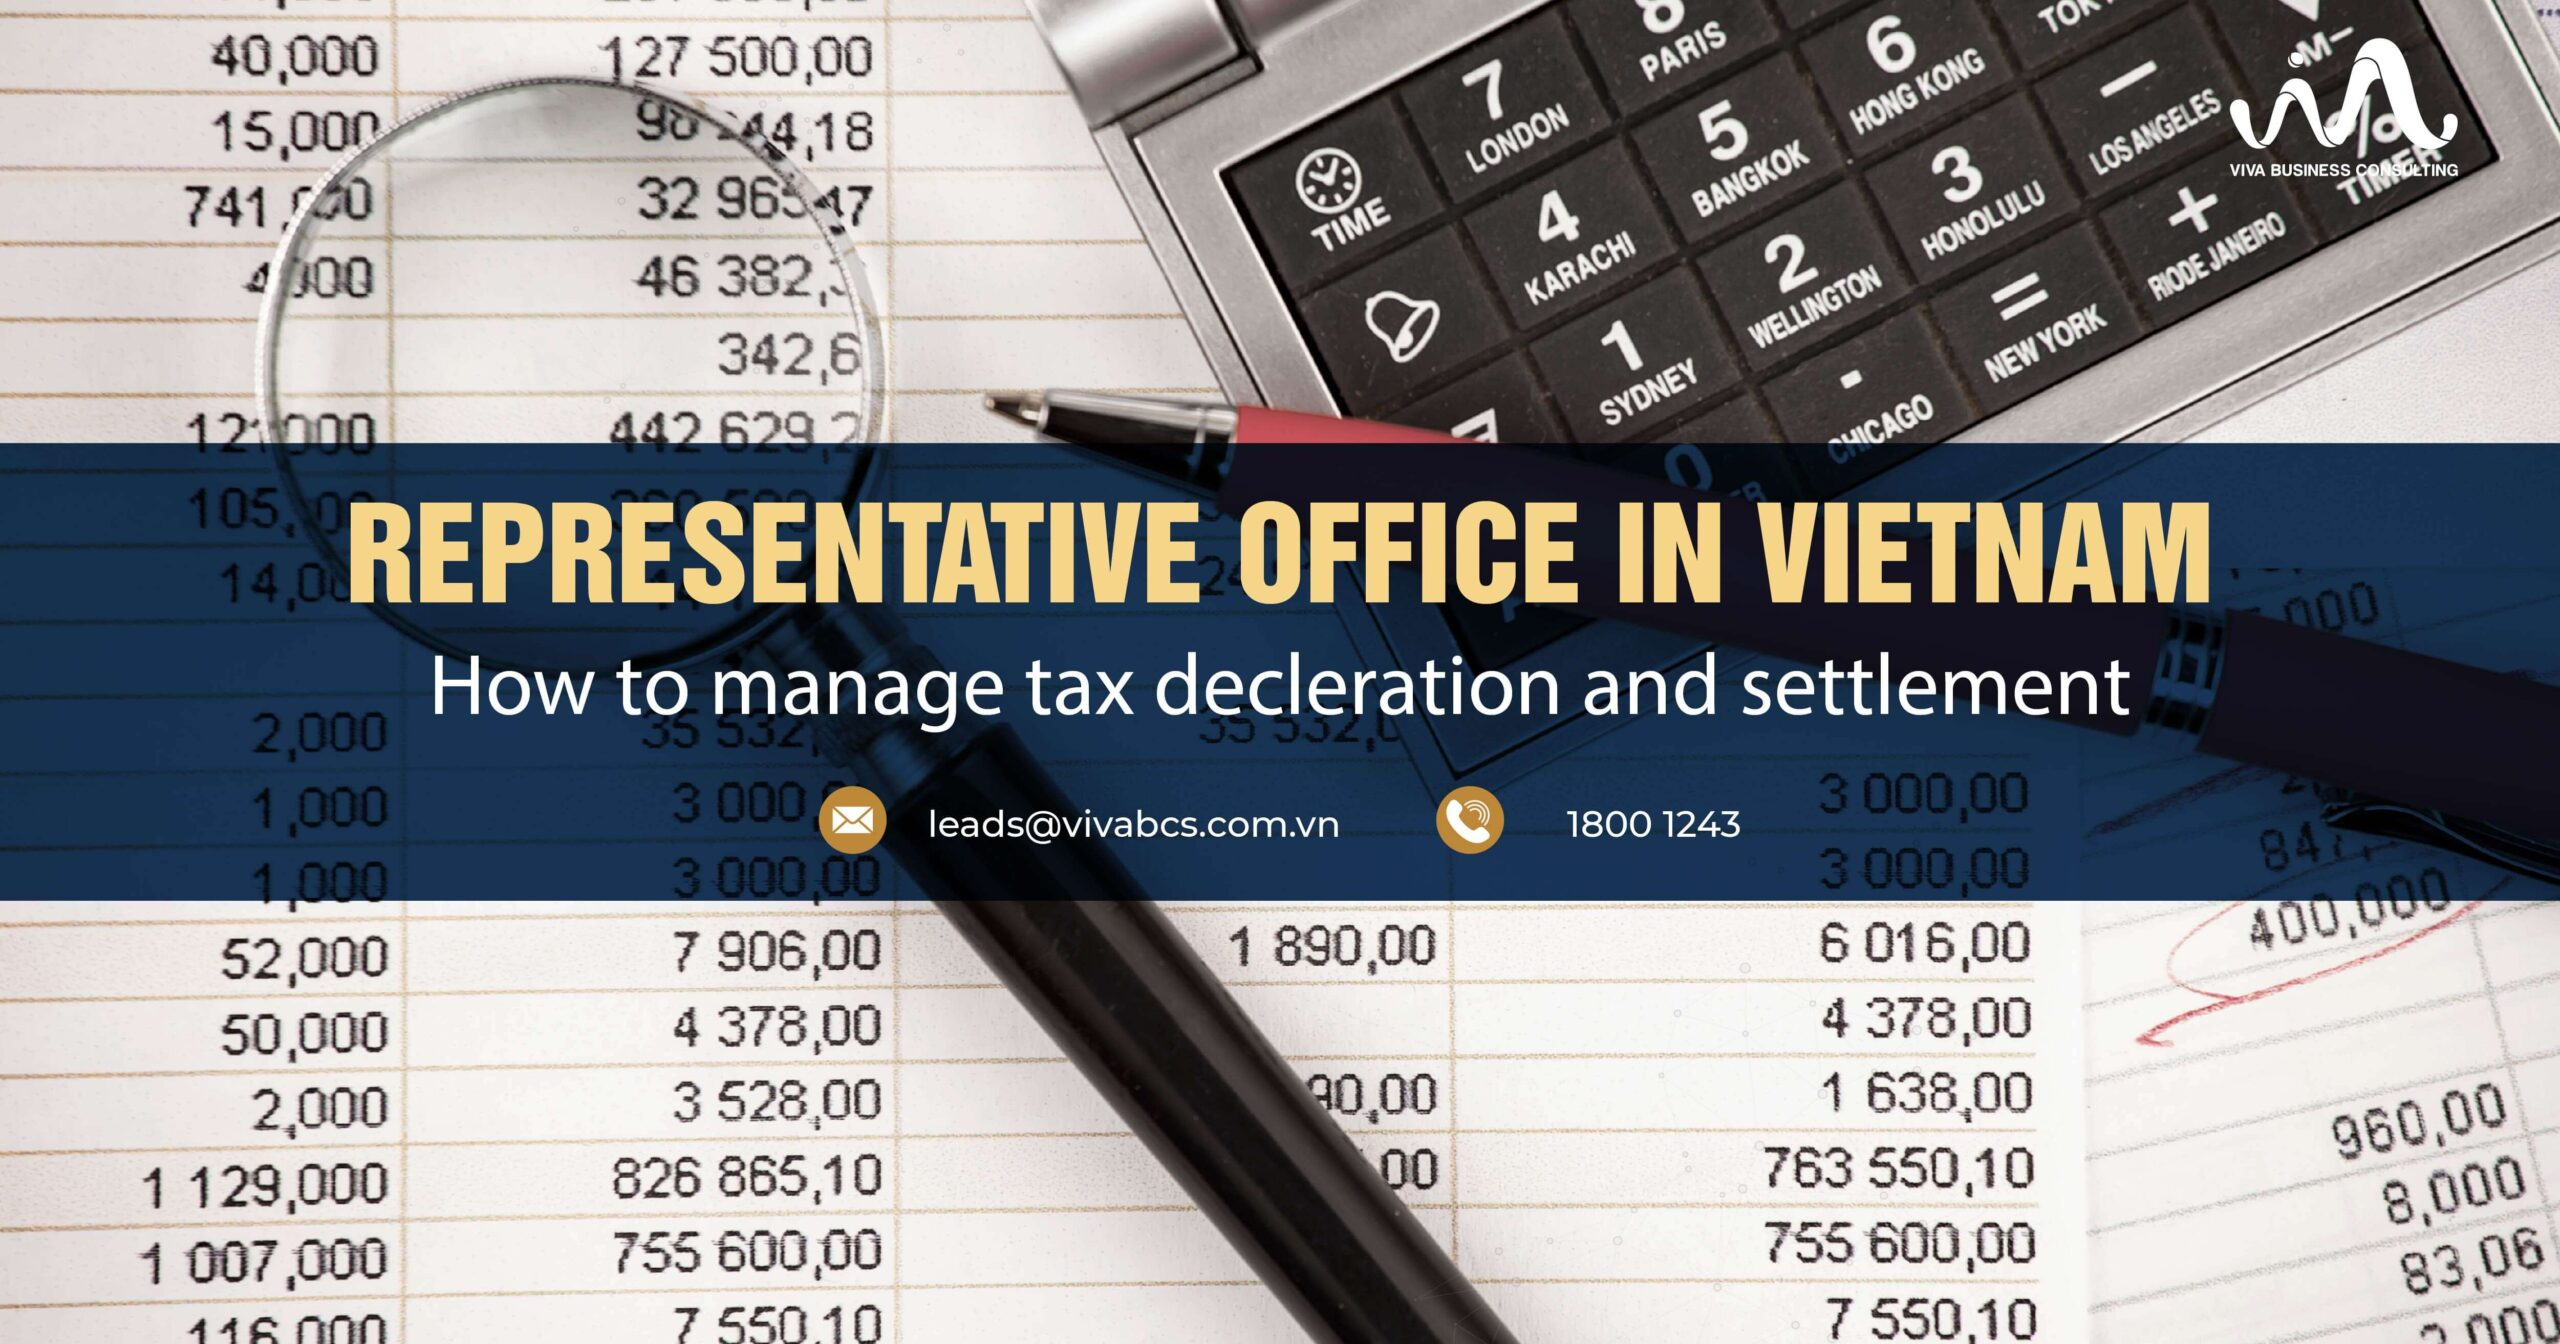 Representative Office in Vietnam: Tax declaration